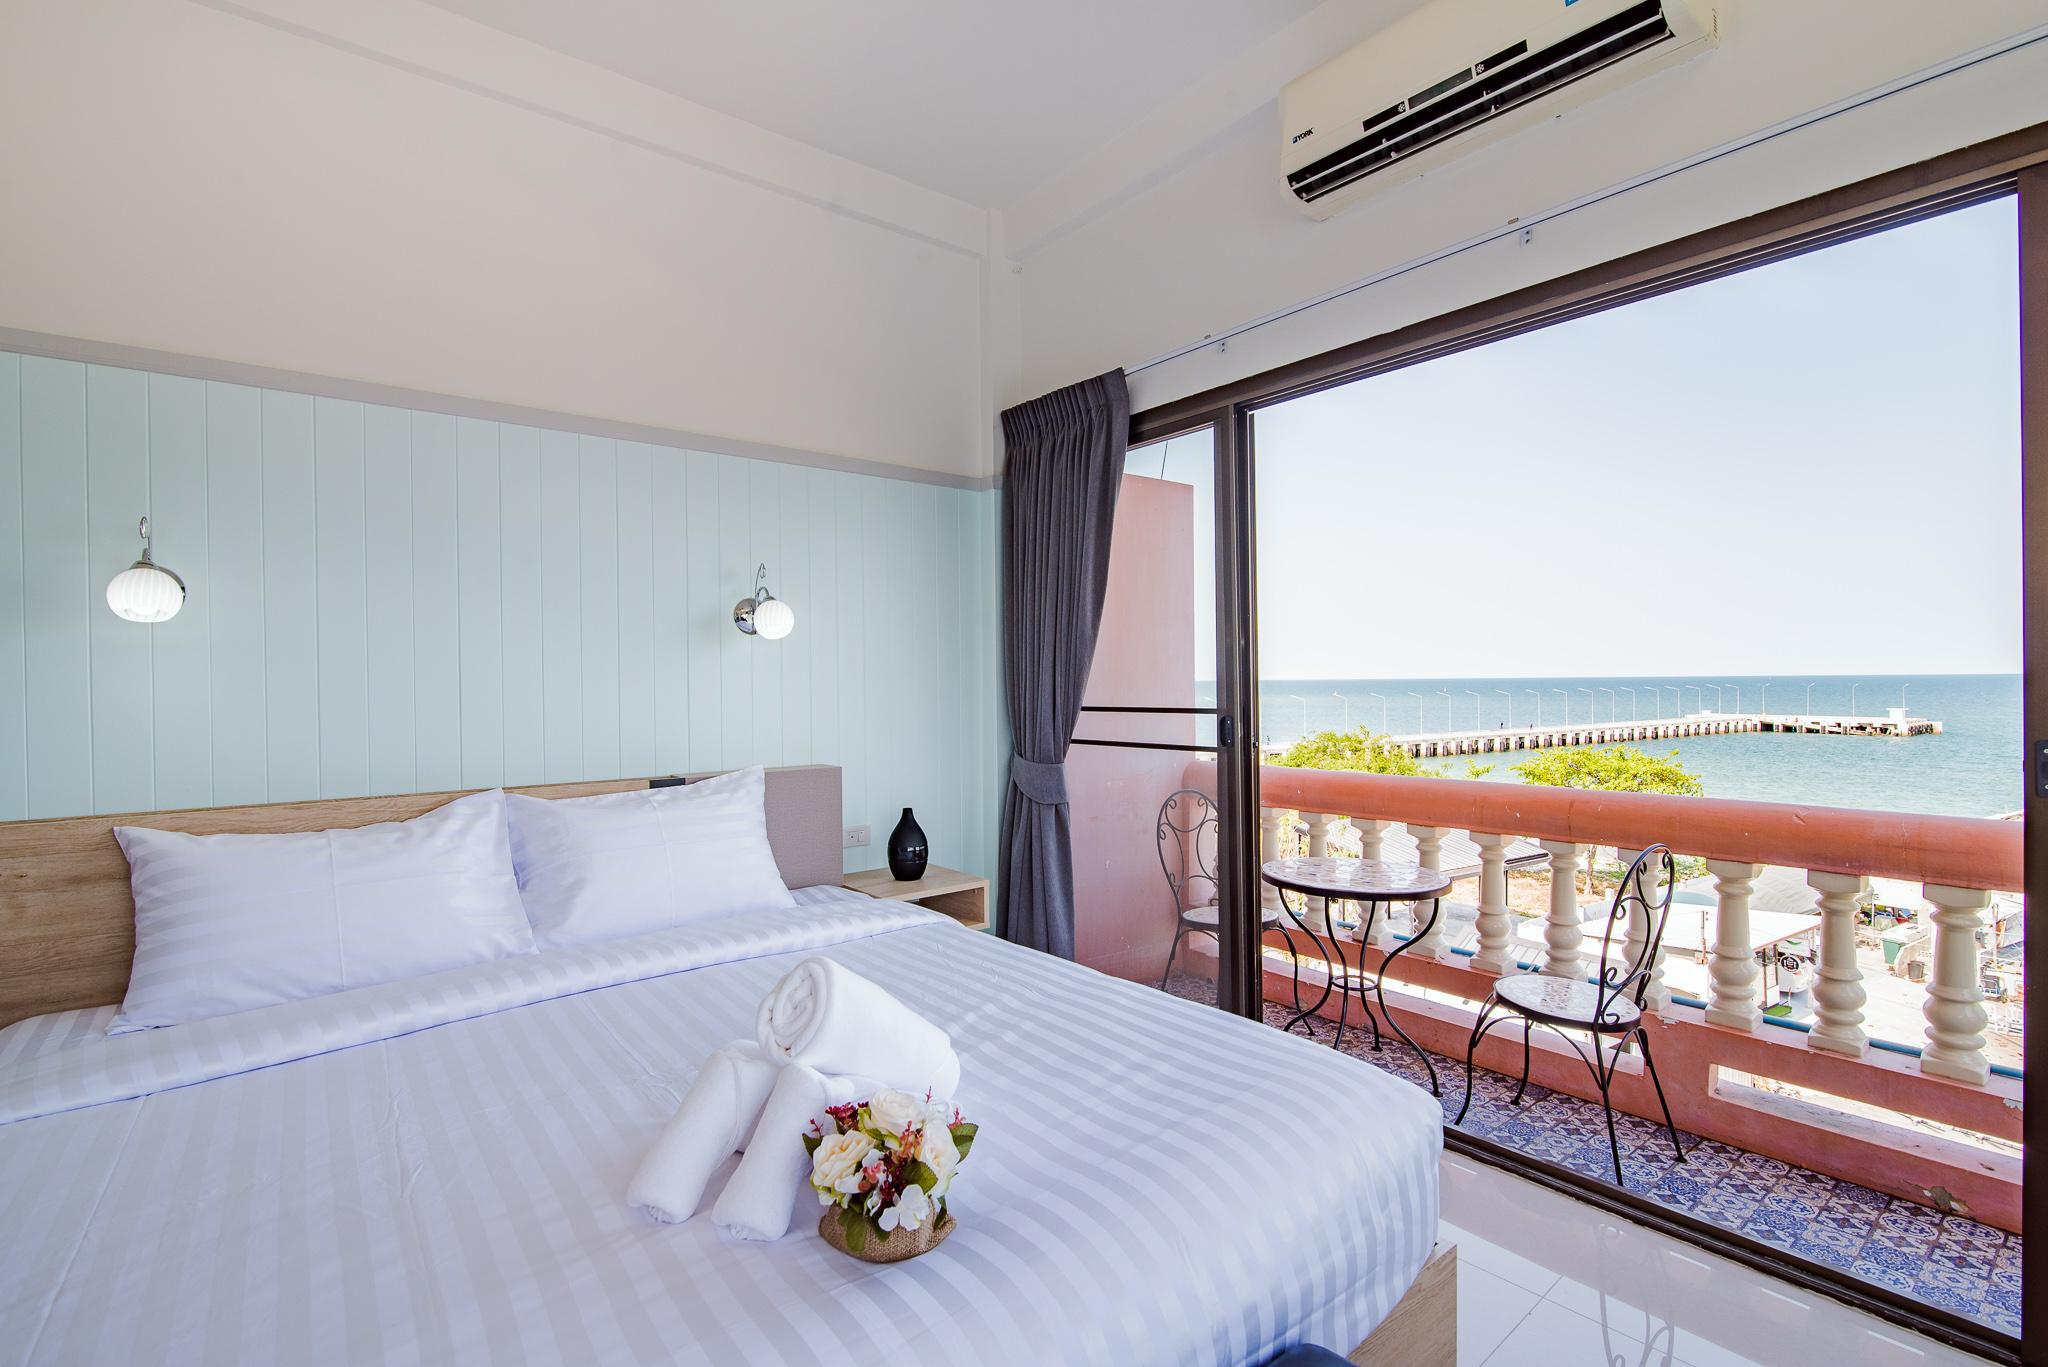 Deluxe Sea View Balcony Room